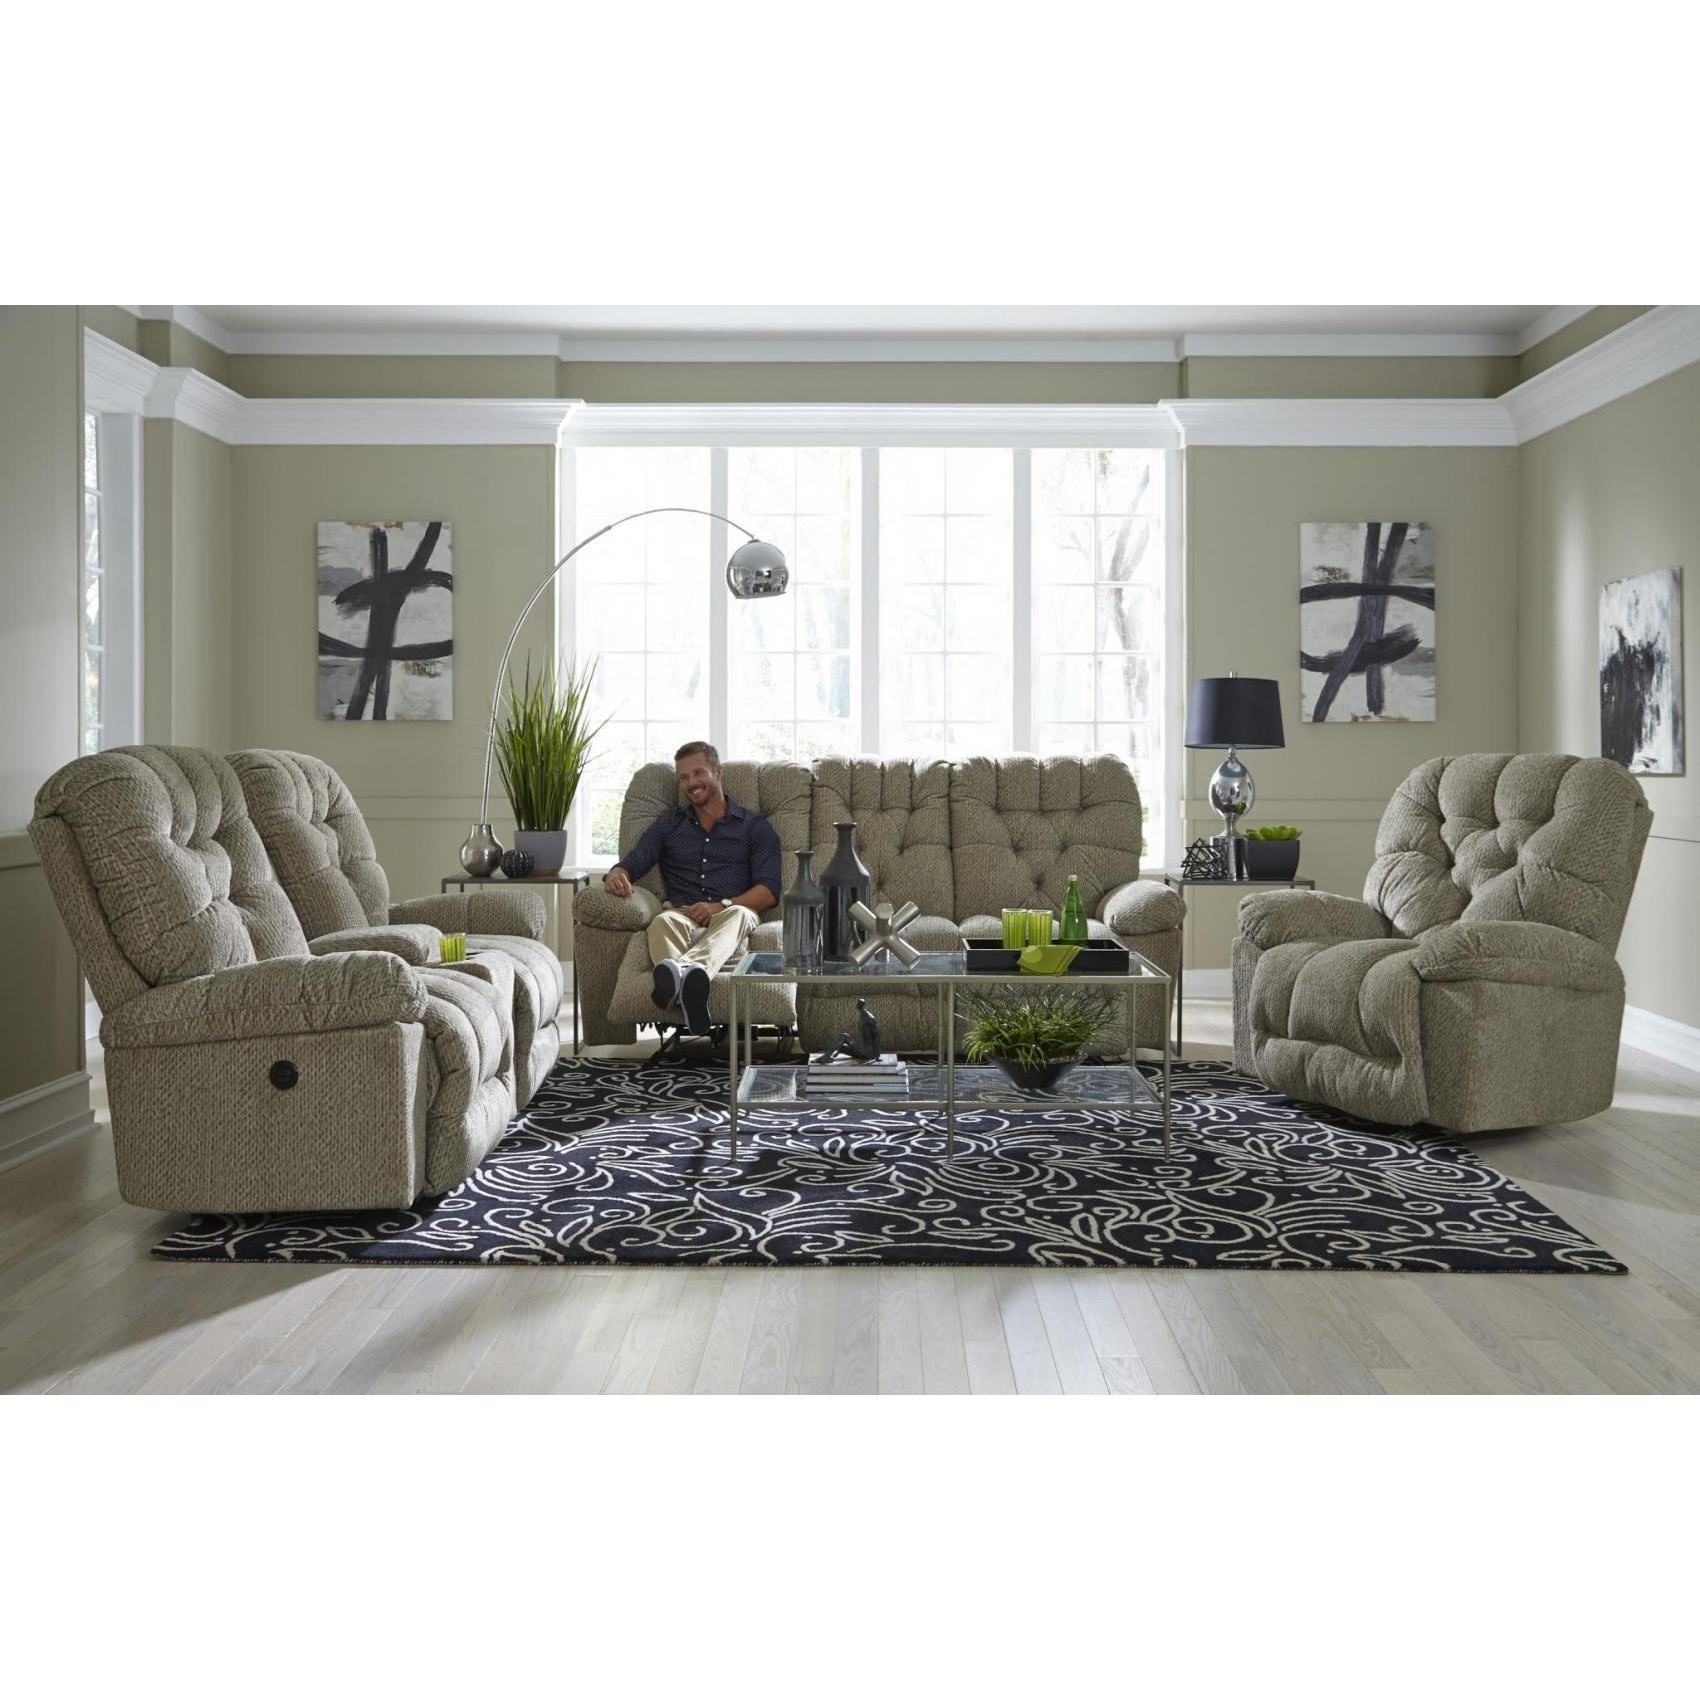 Bolt Reclining Living Room Group by Best Home Furnishings at Best Home Furnishings